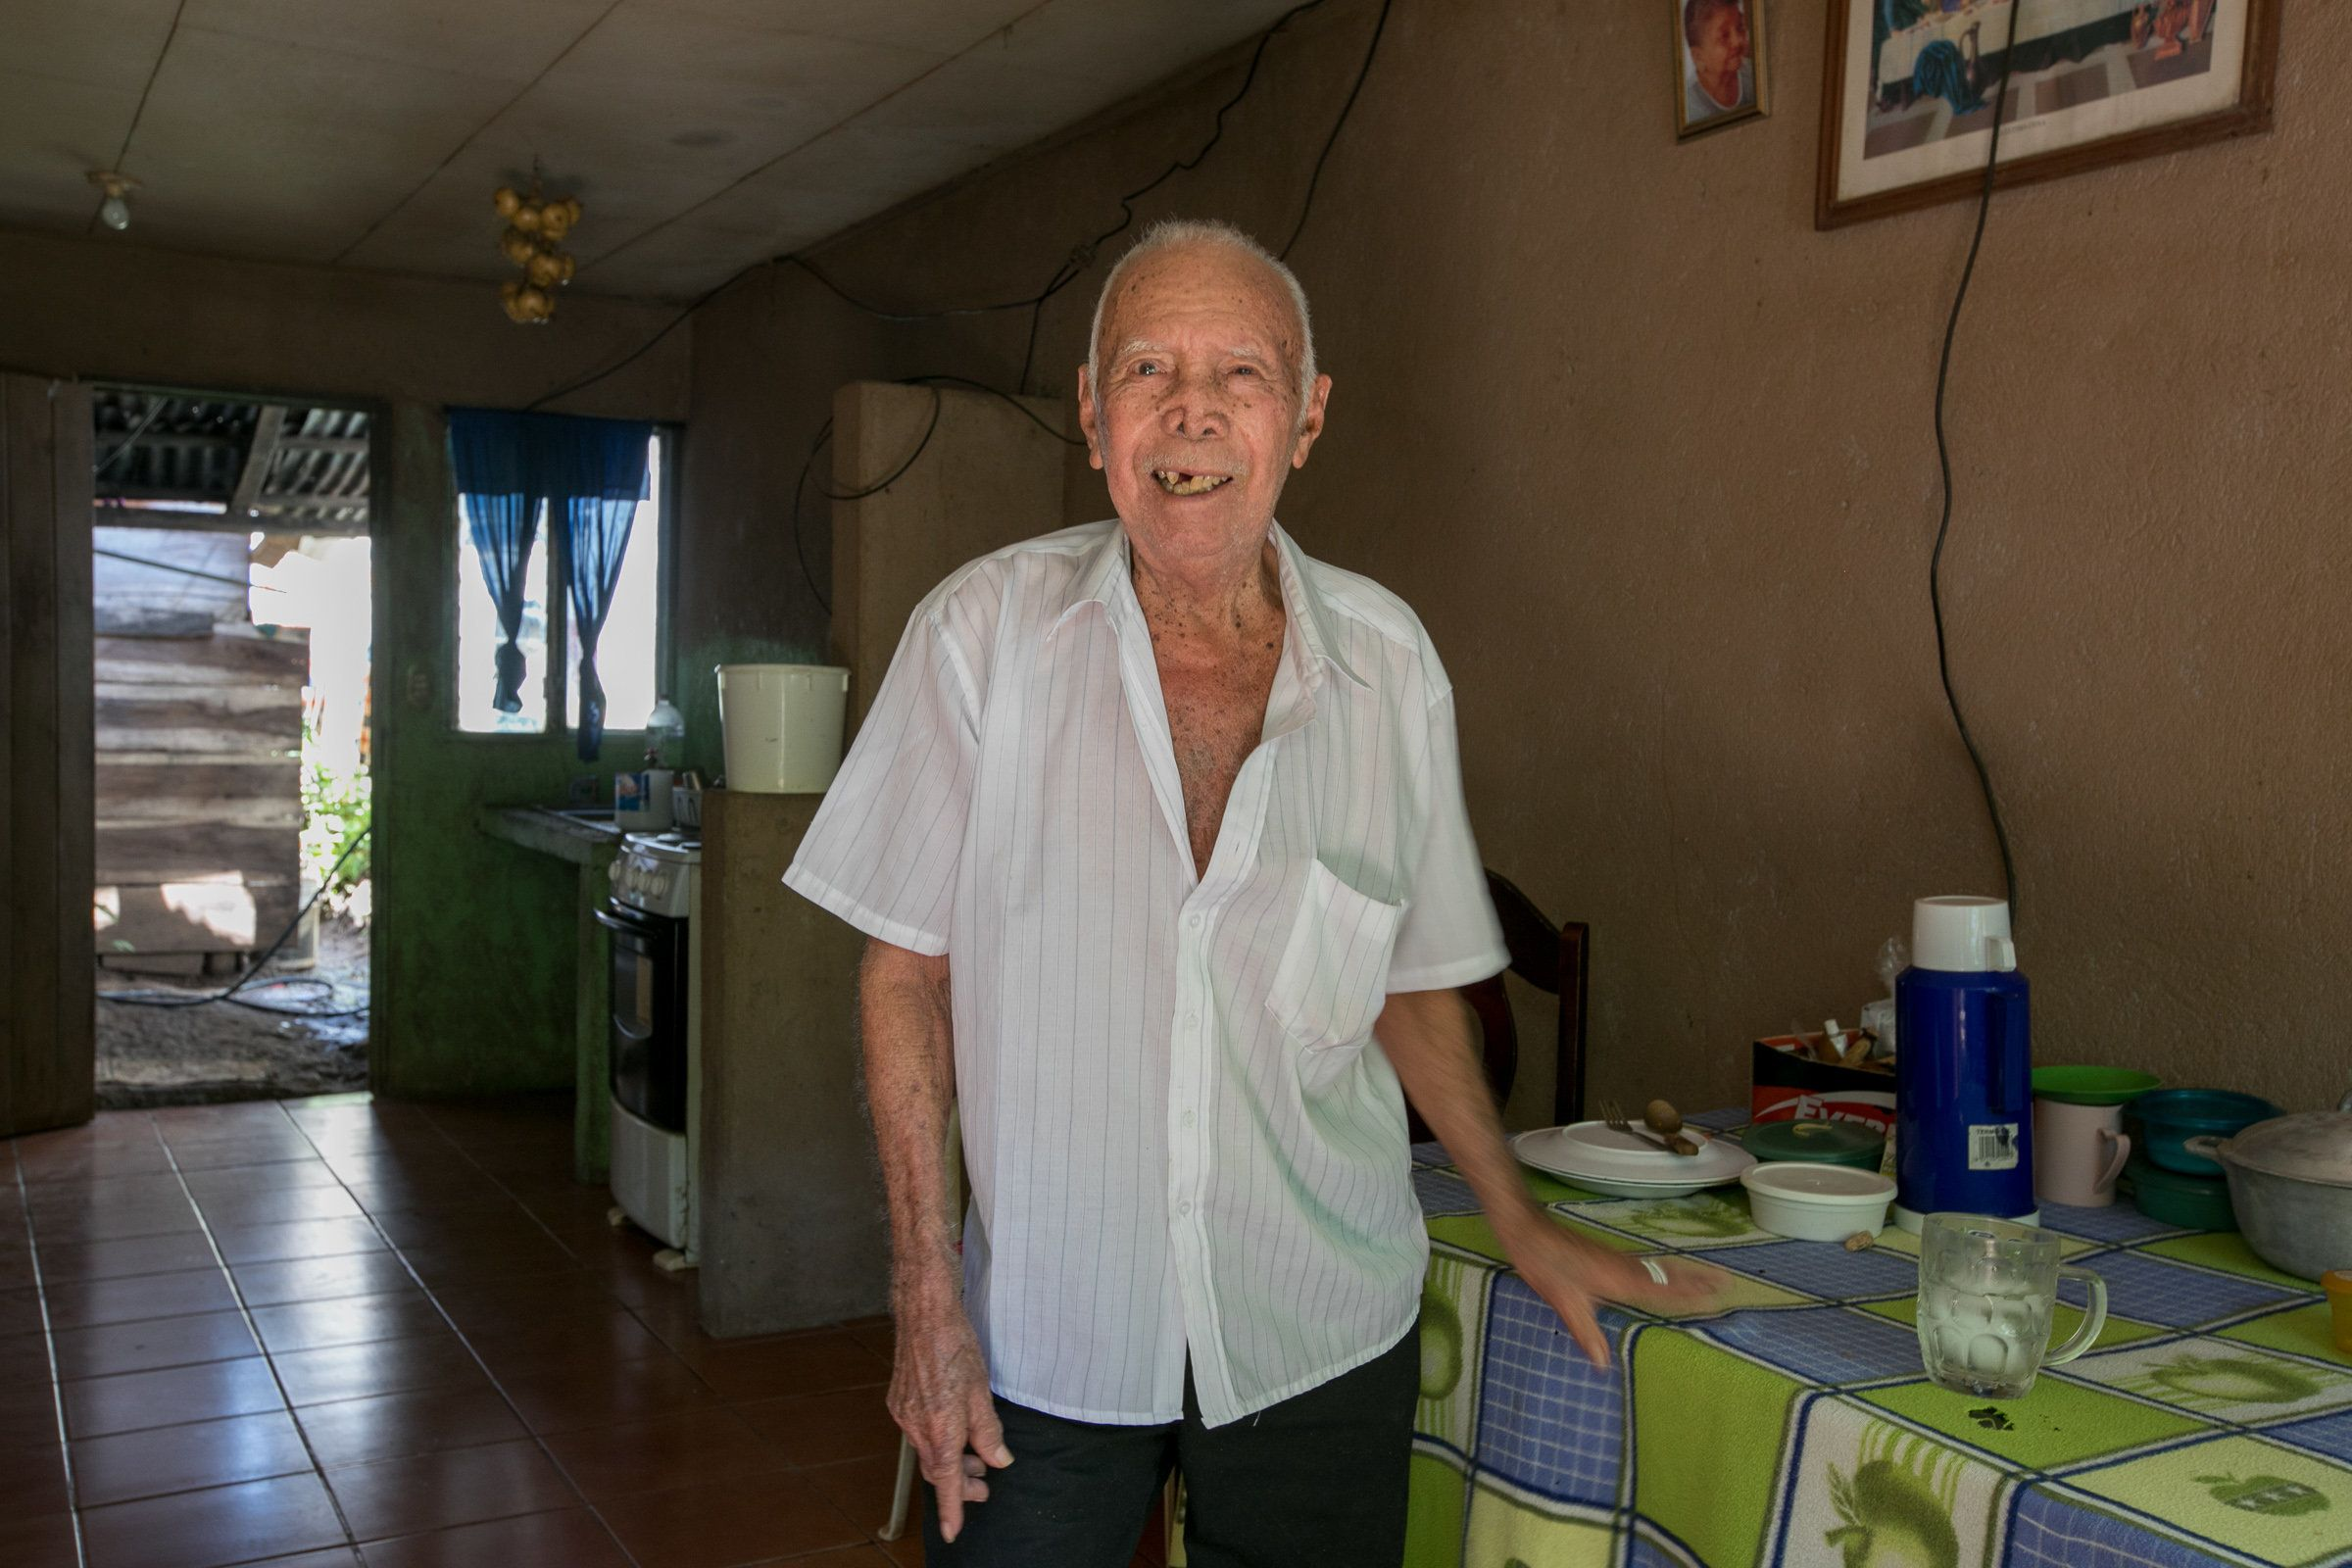 Francisco Gomez turned 100 in April. Photographed at his house in Nicoya, Guancaste, Costa